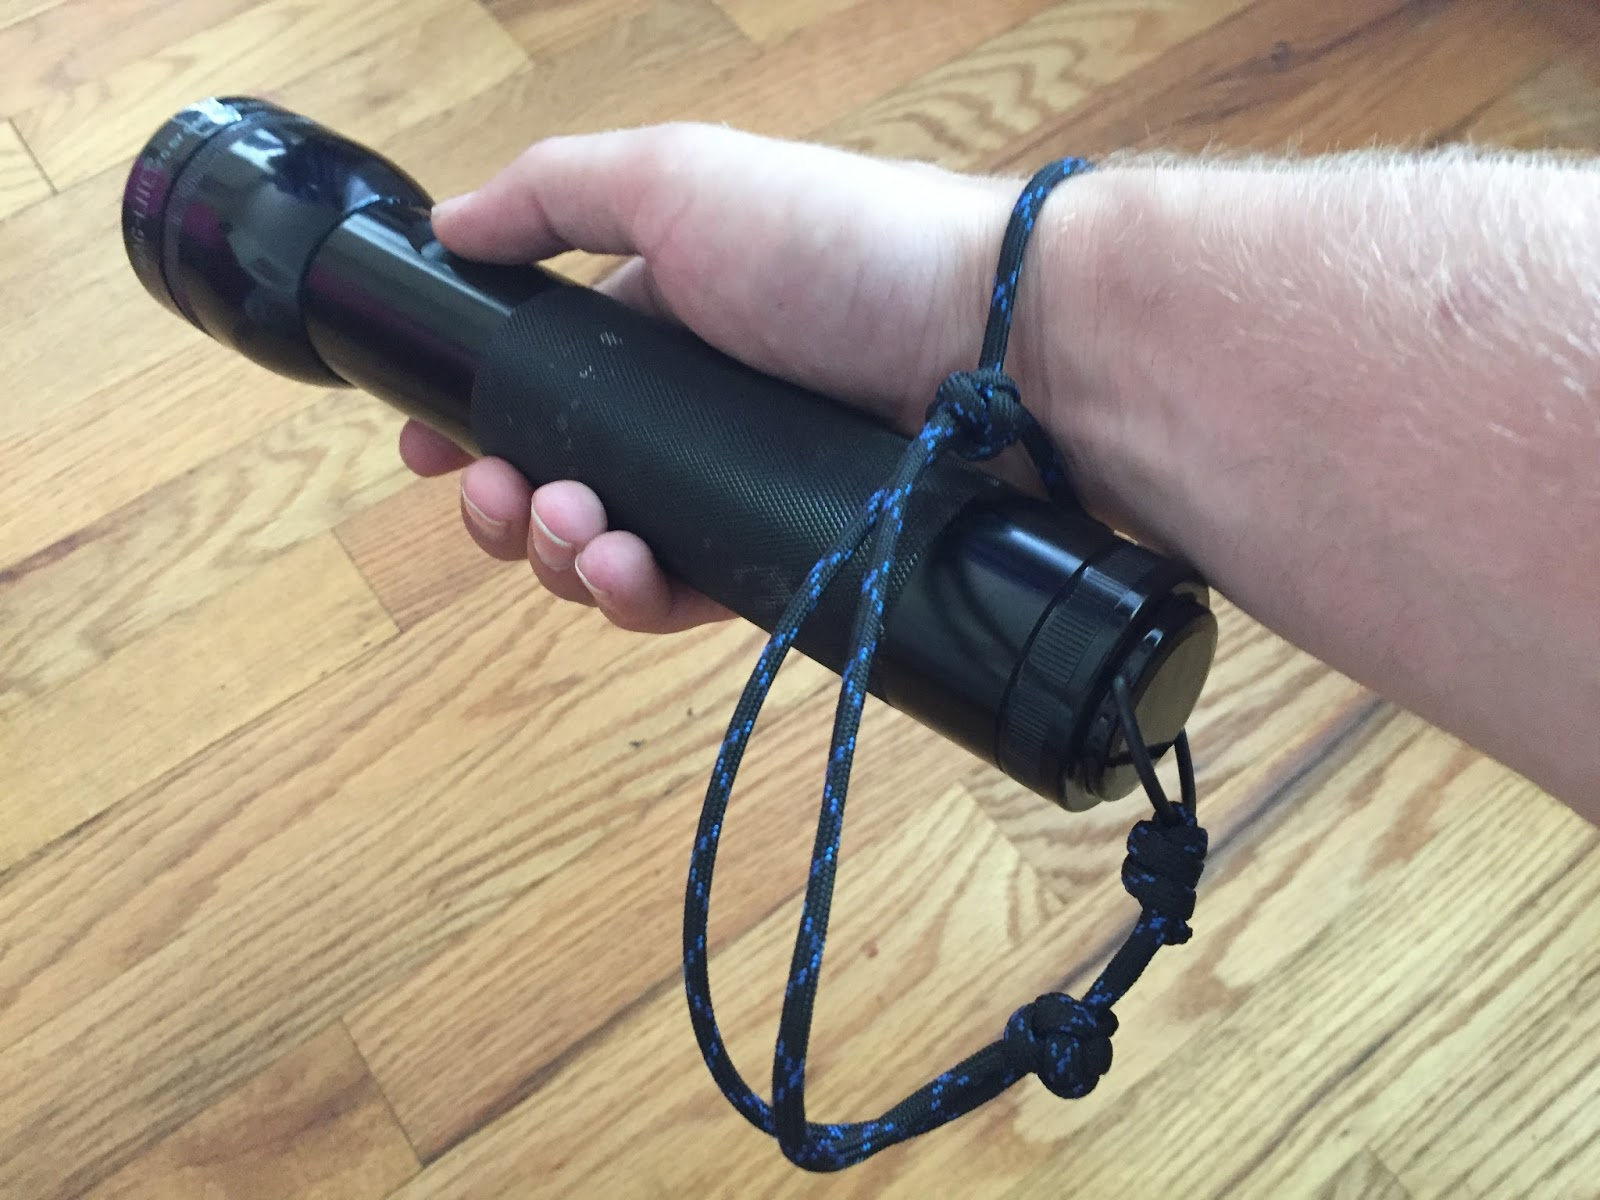 Maglite: More than a Cop light: July 2017